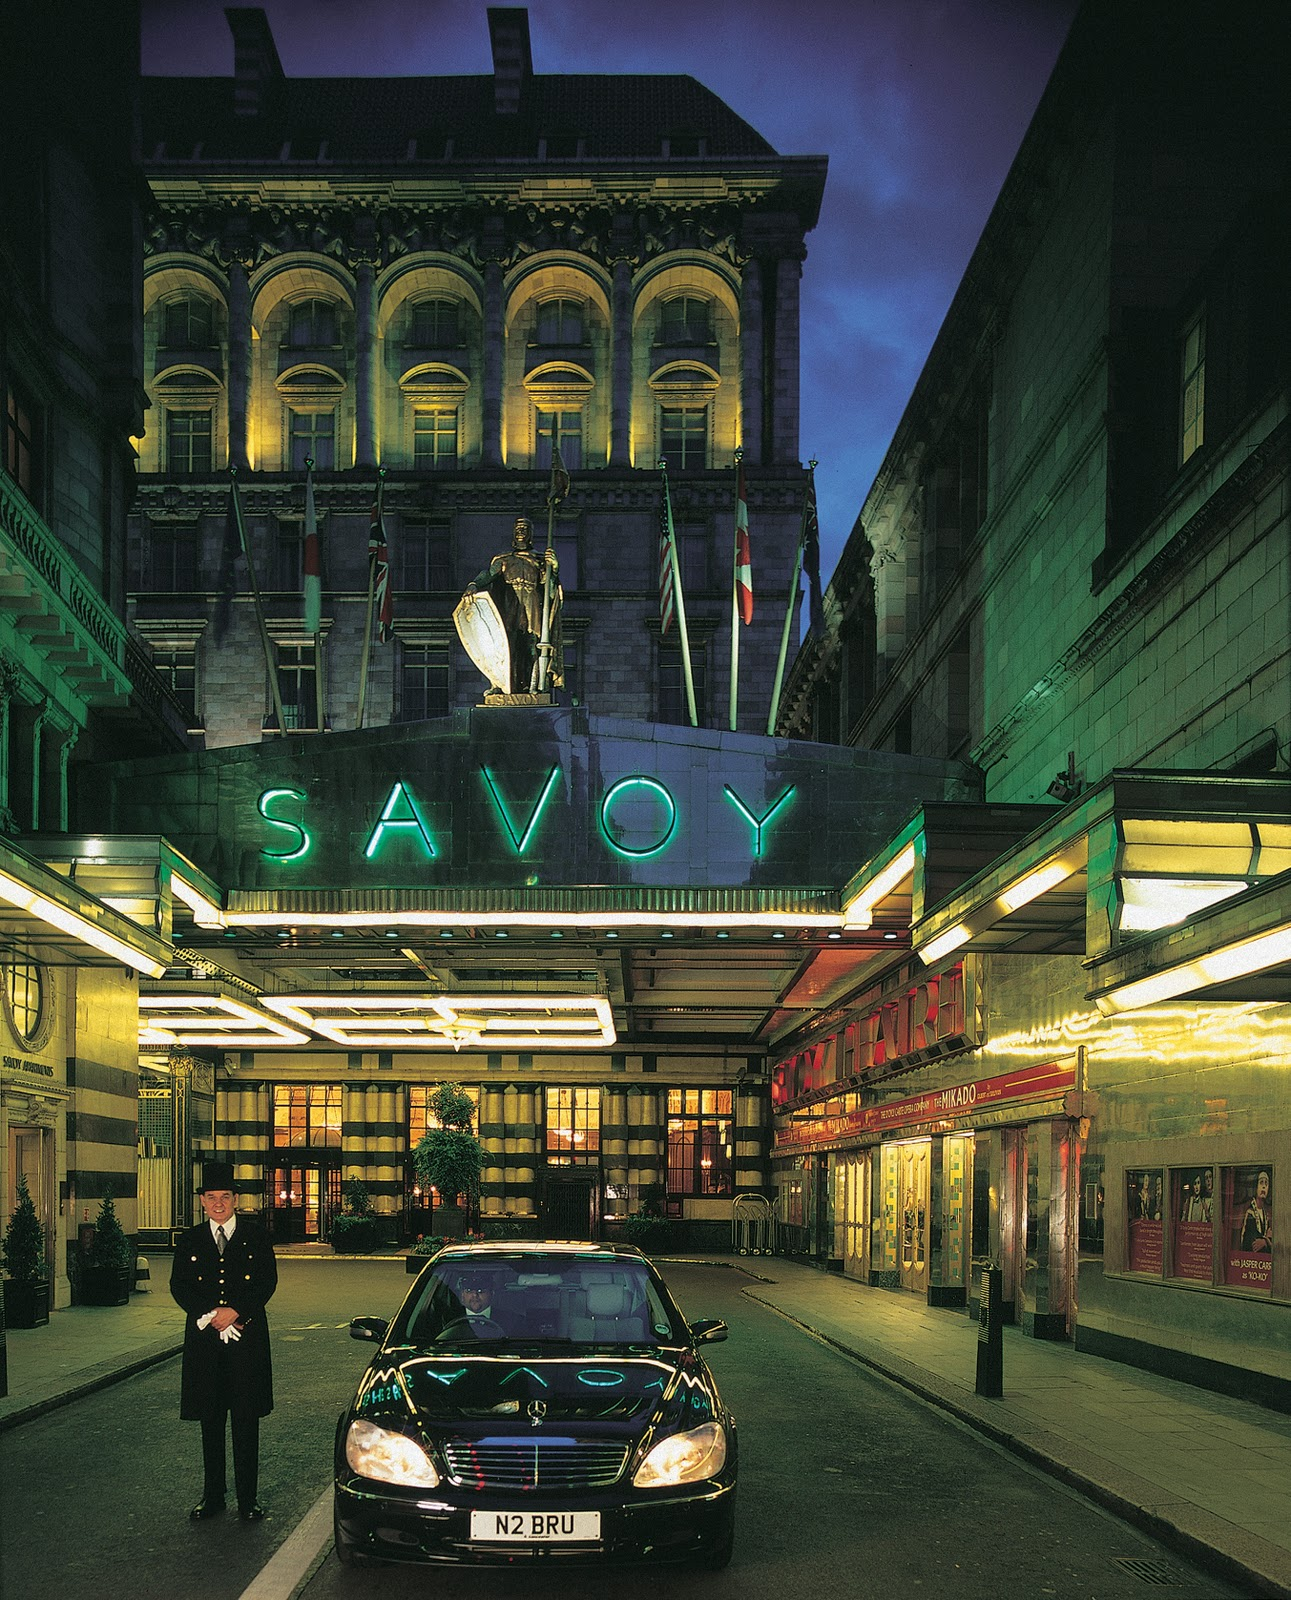 the cambridge wine blogger project hope ball the savoy london. Black Bedroom Furniture Sets. Home Design Ideas